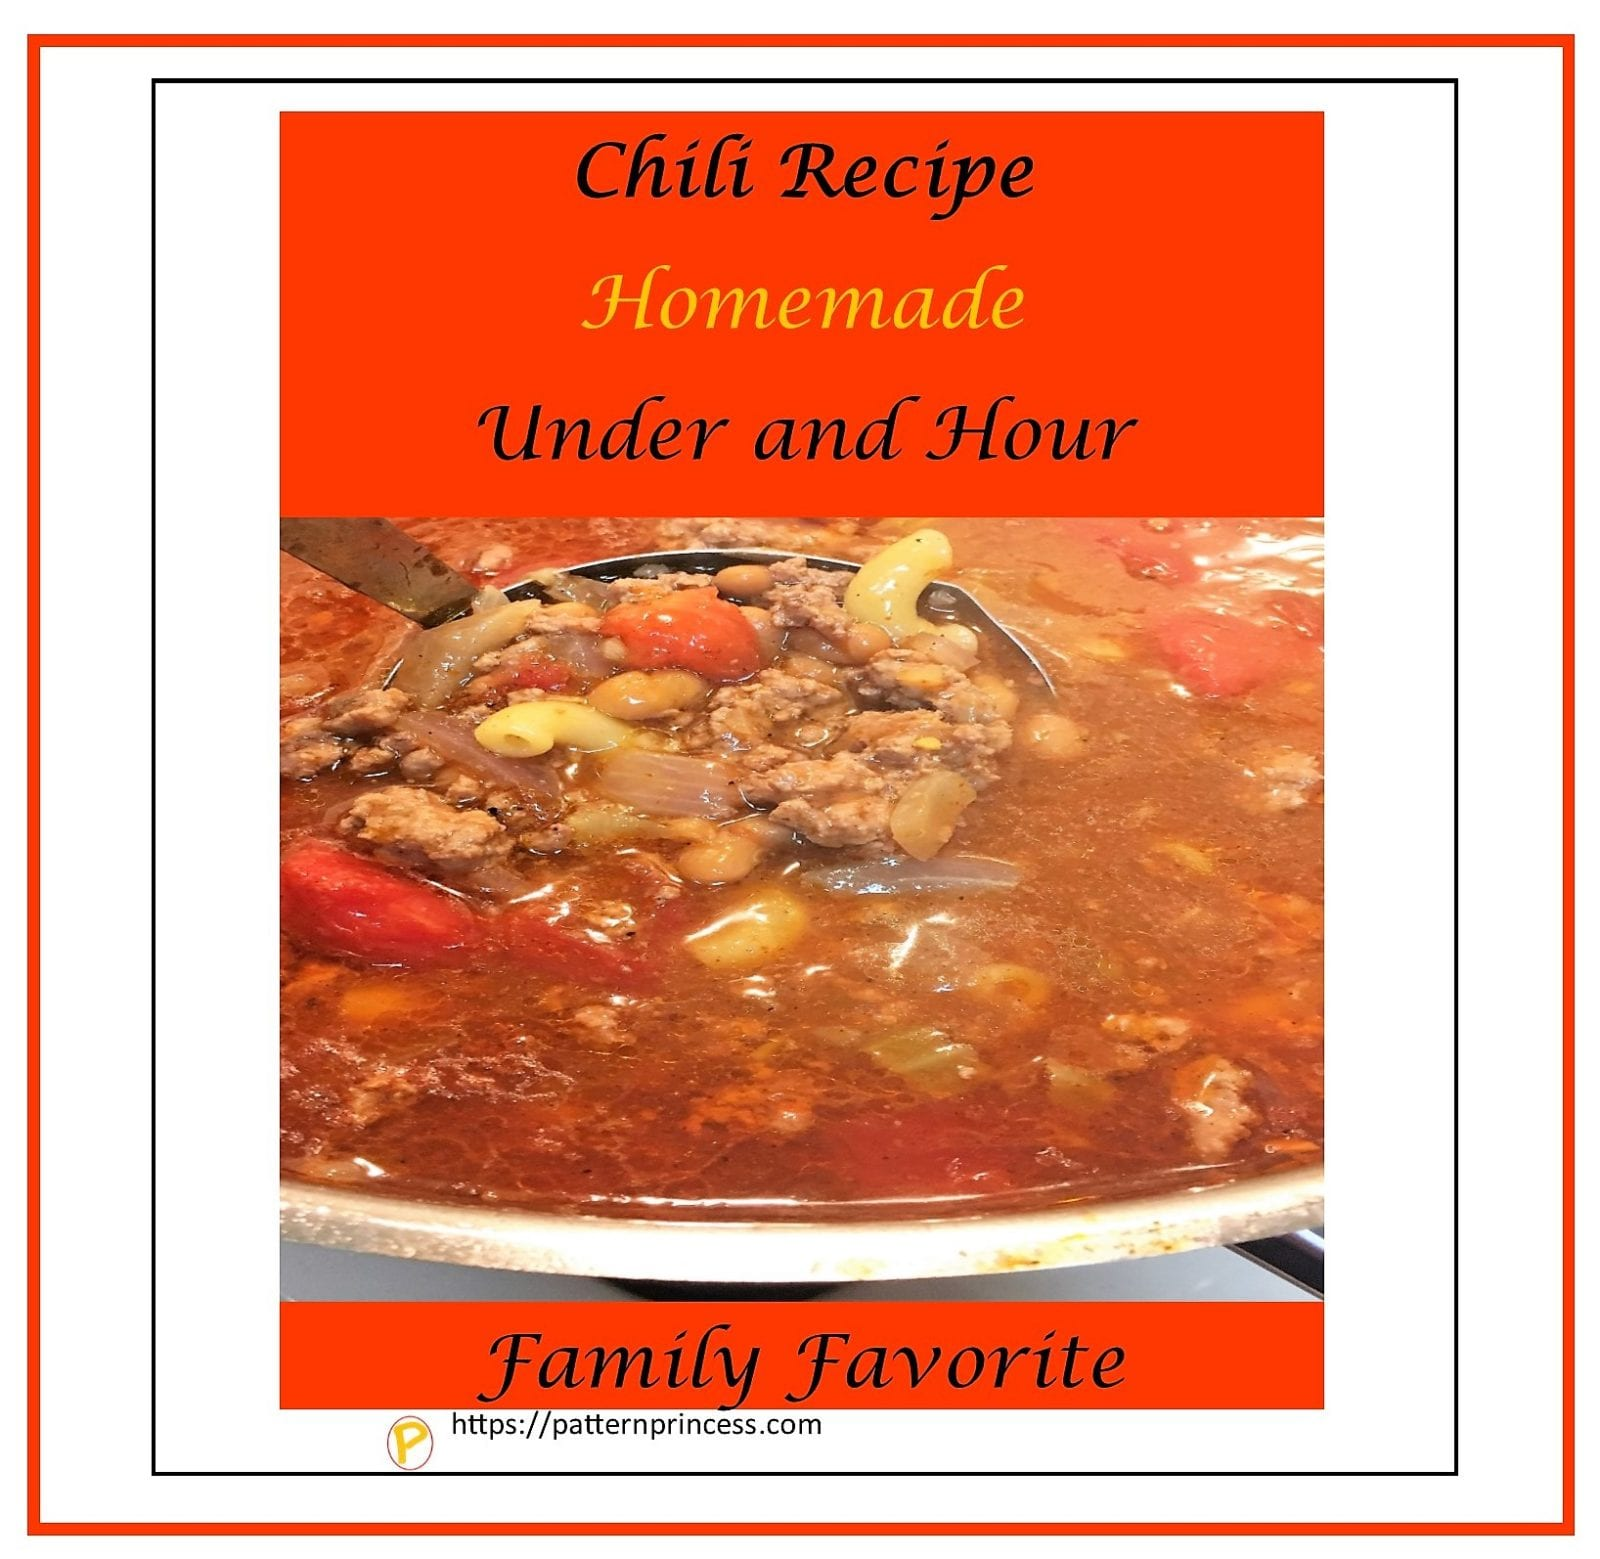 Chili Recipe Homemade Under and Hour 1